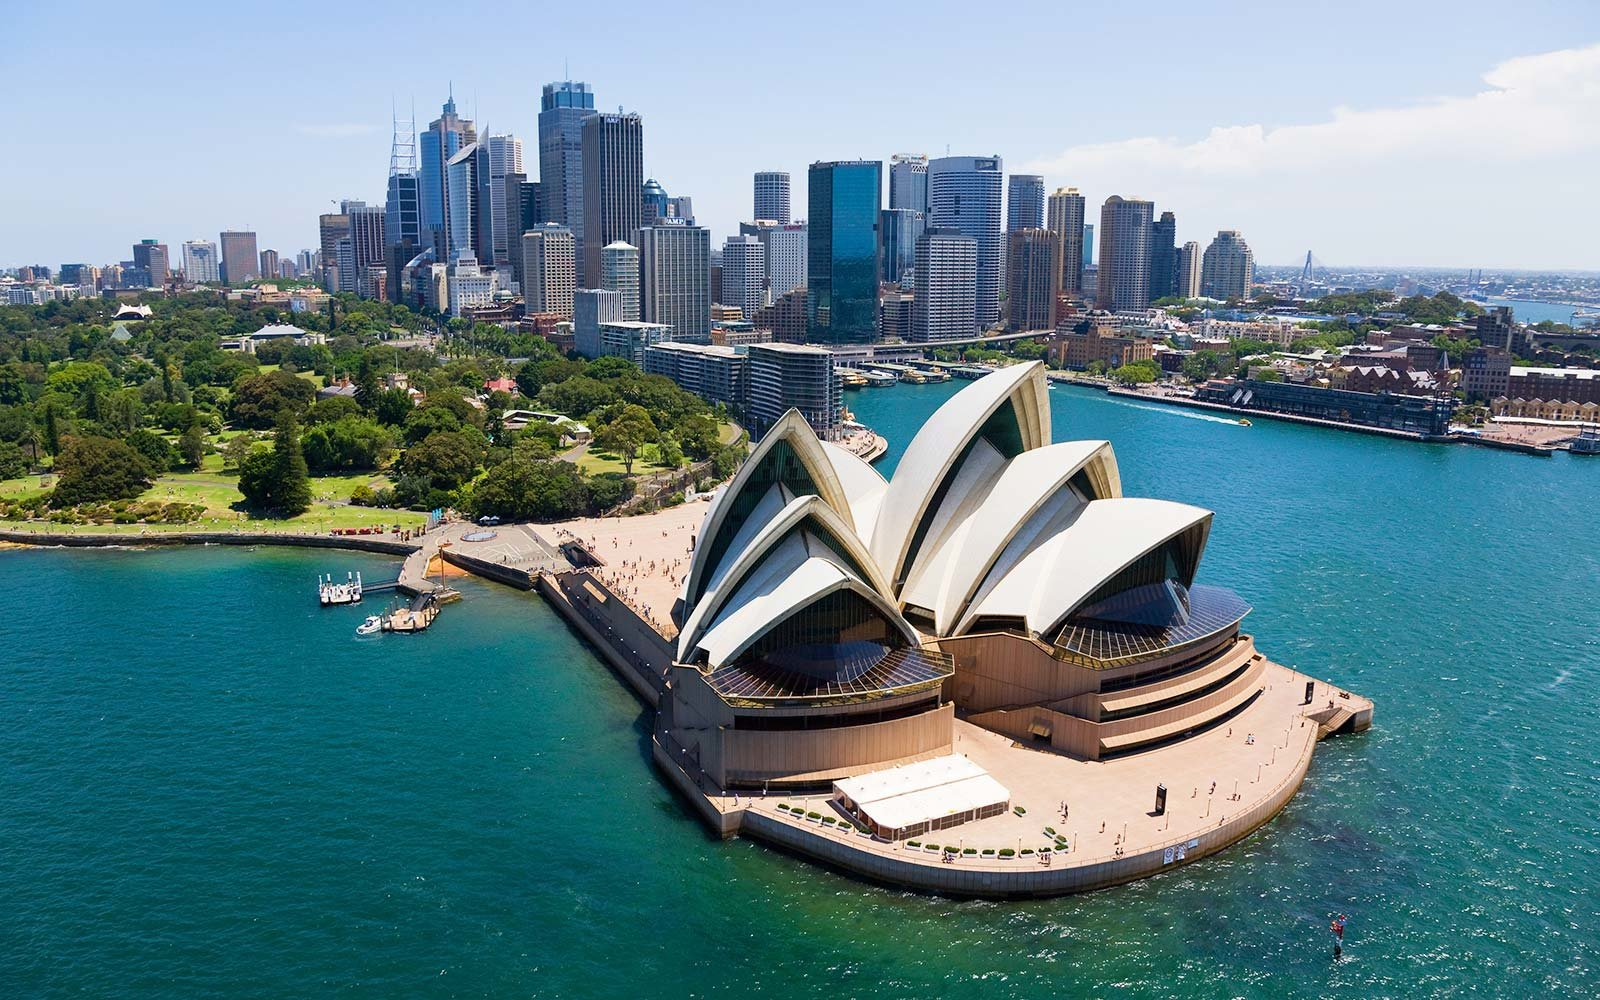 Prayer Request for Woman in Australia - Church Without Walls